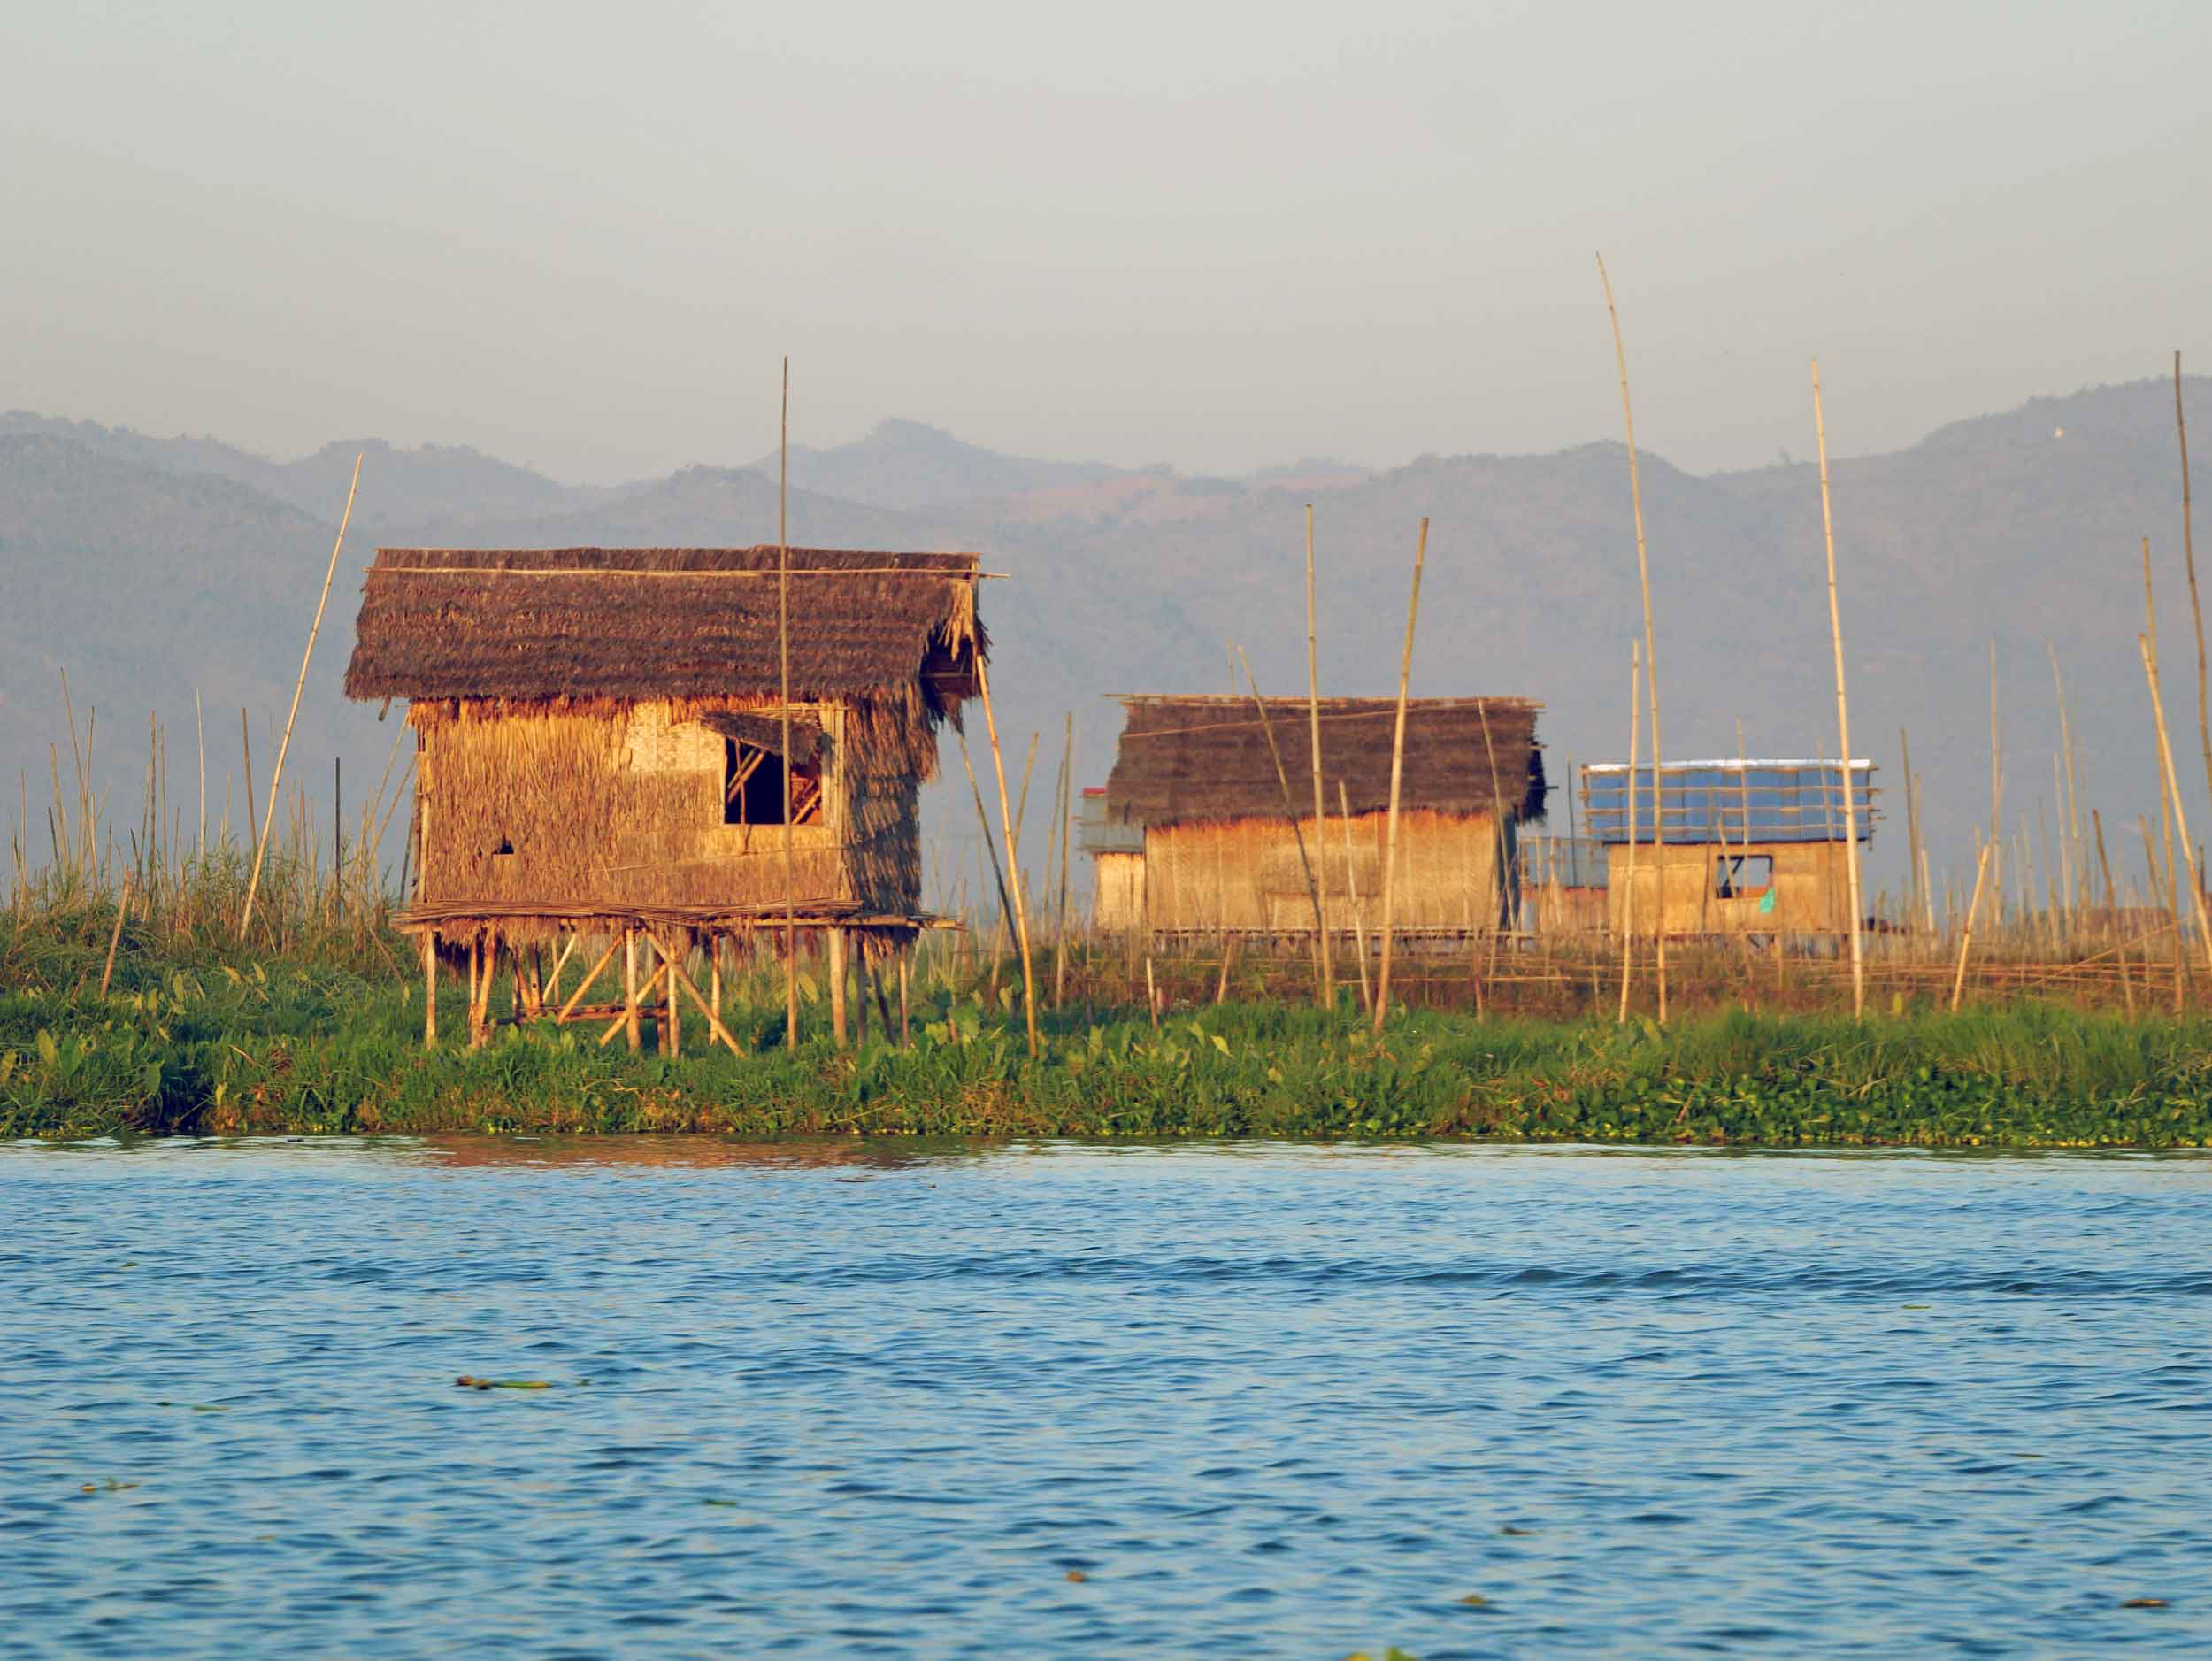 Inle Lake is Myanmar's answer to Venice, with long tail boats and kayaks used for daily commute (Feb 21).